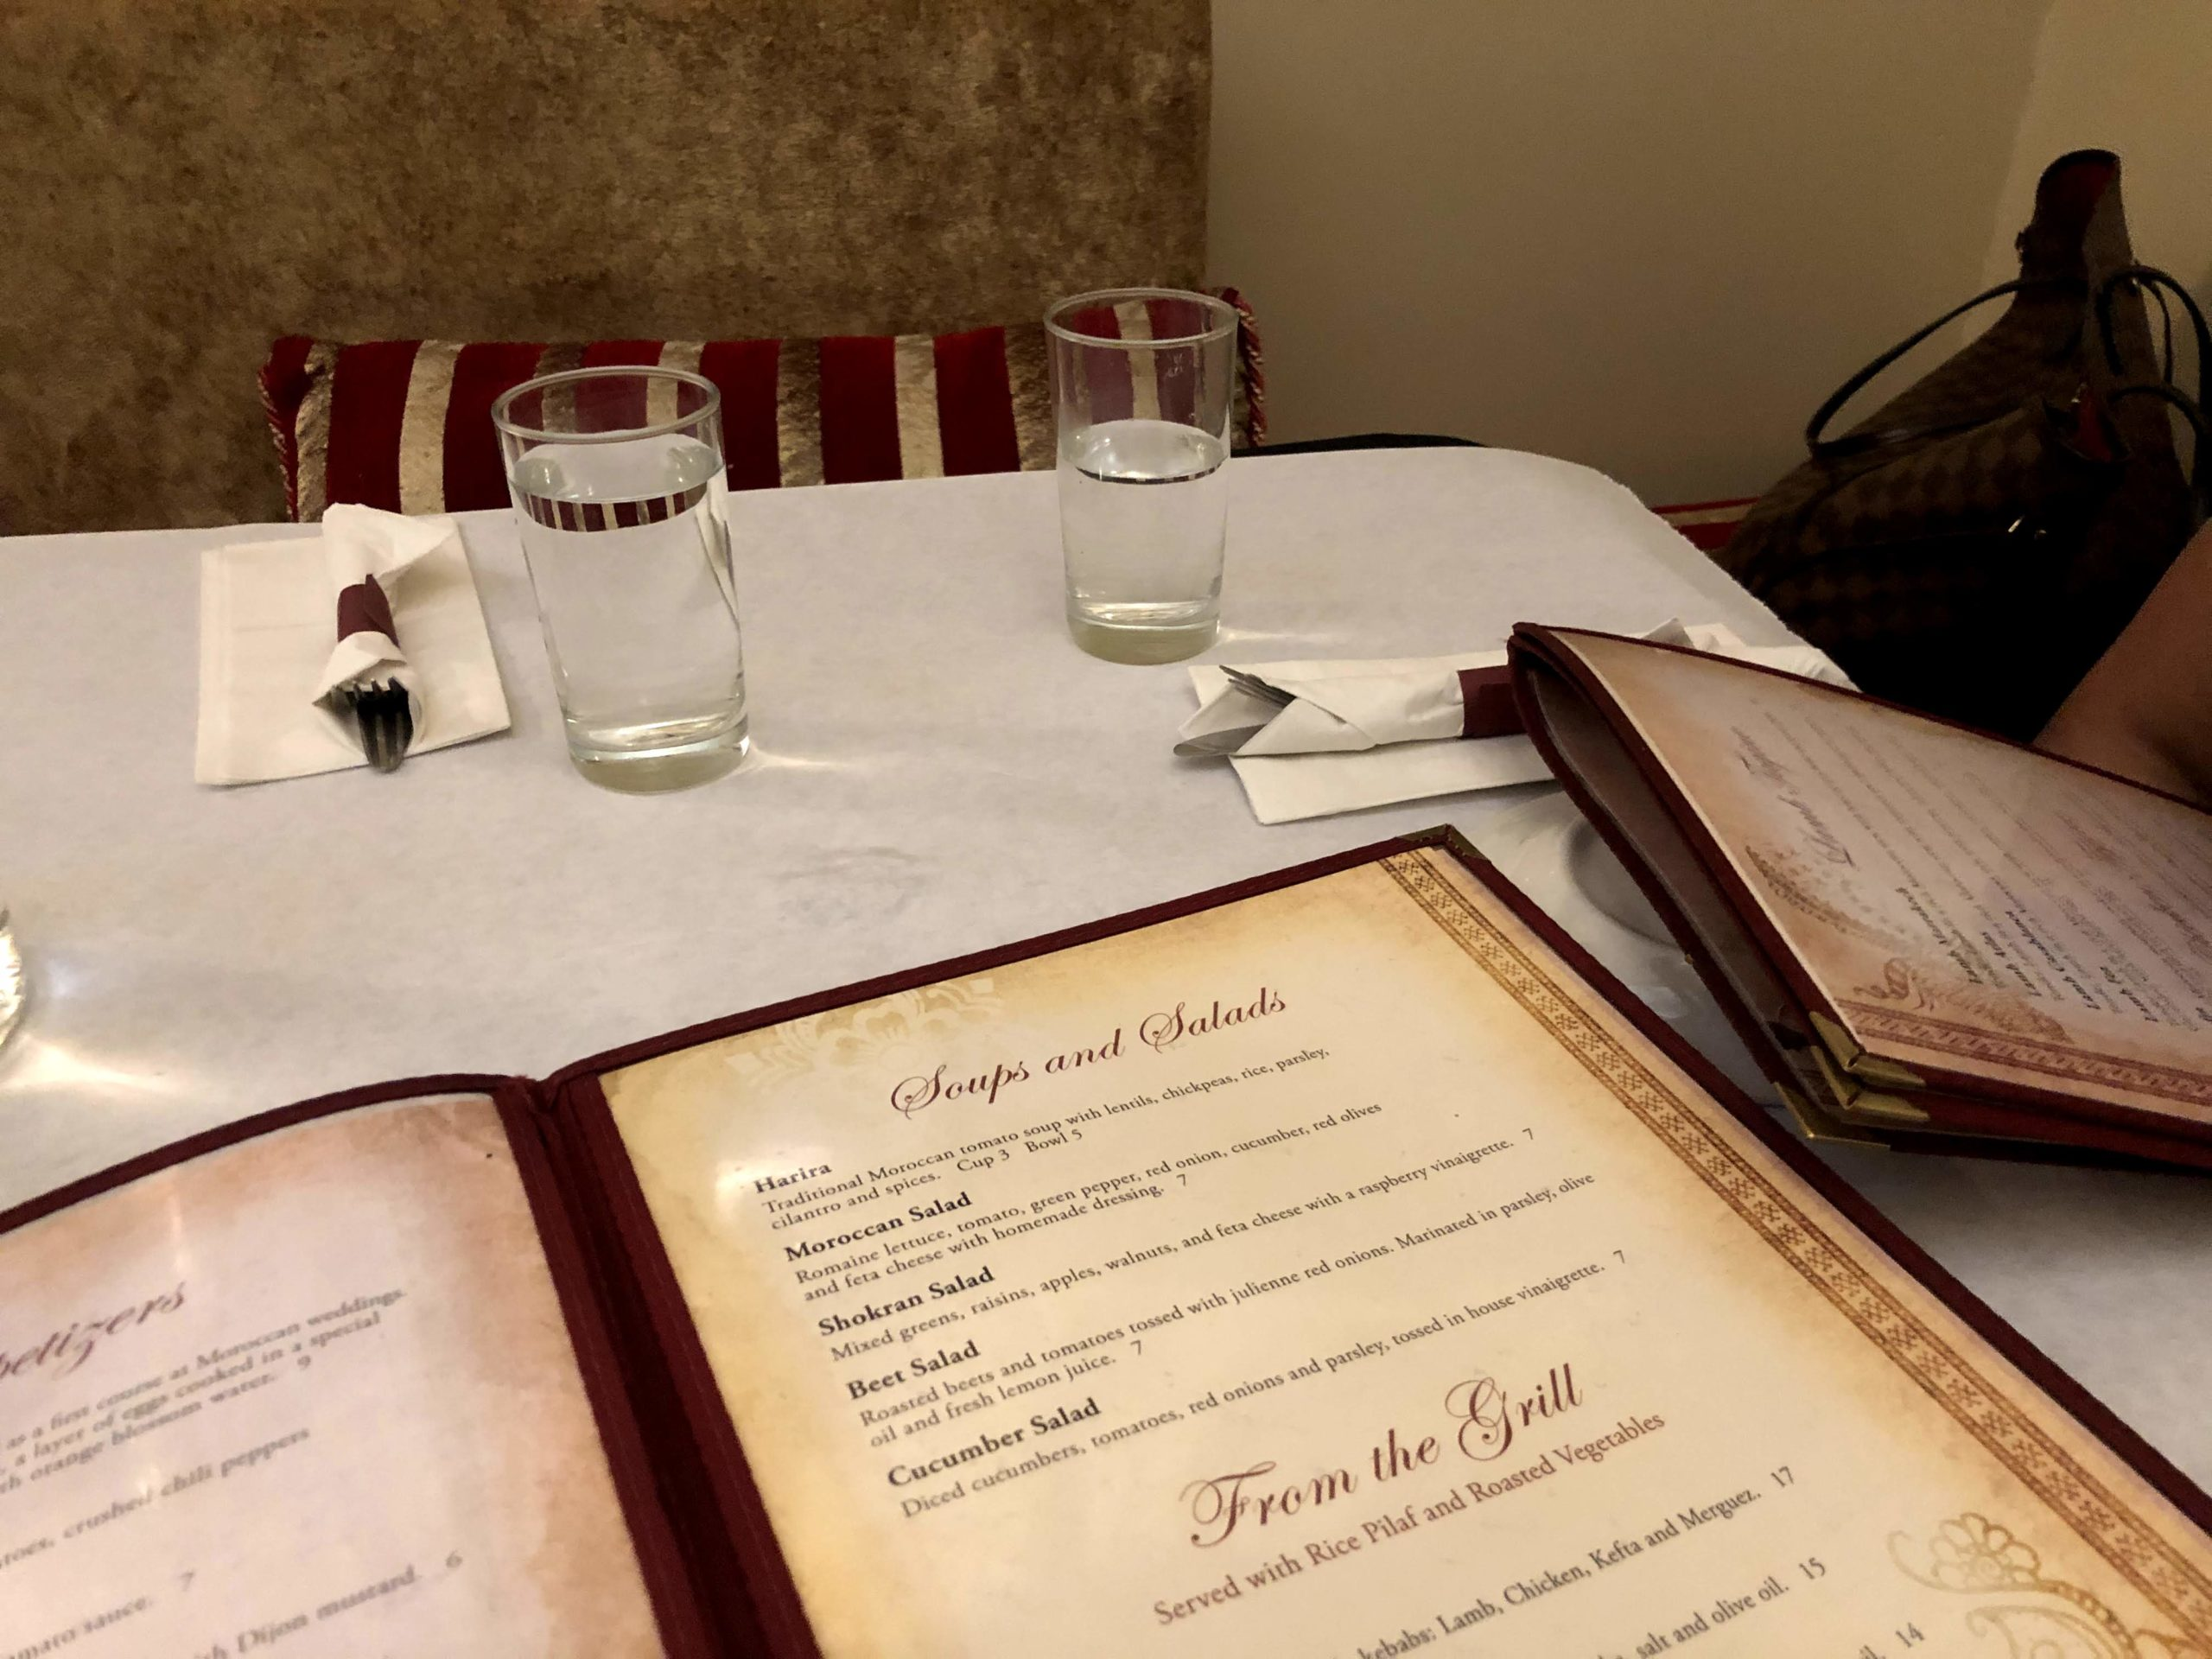 Restaurant with table and menus open